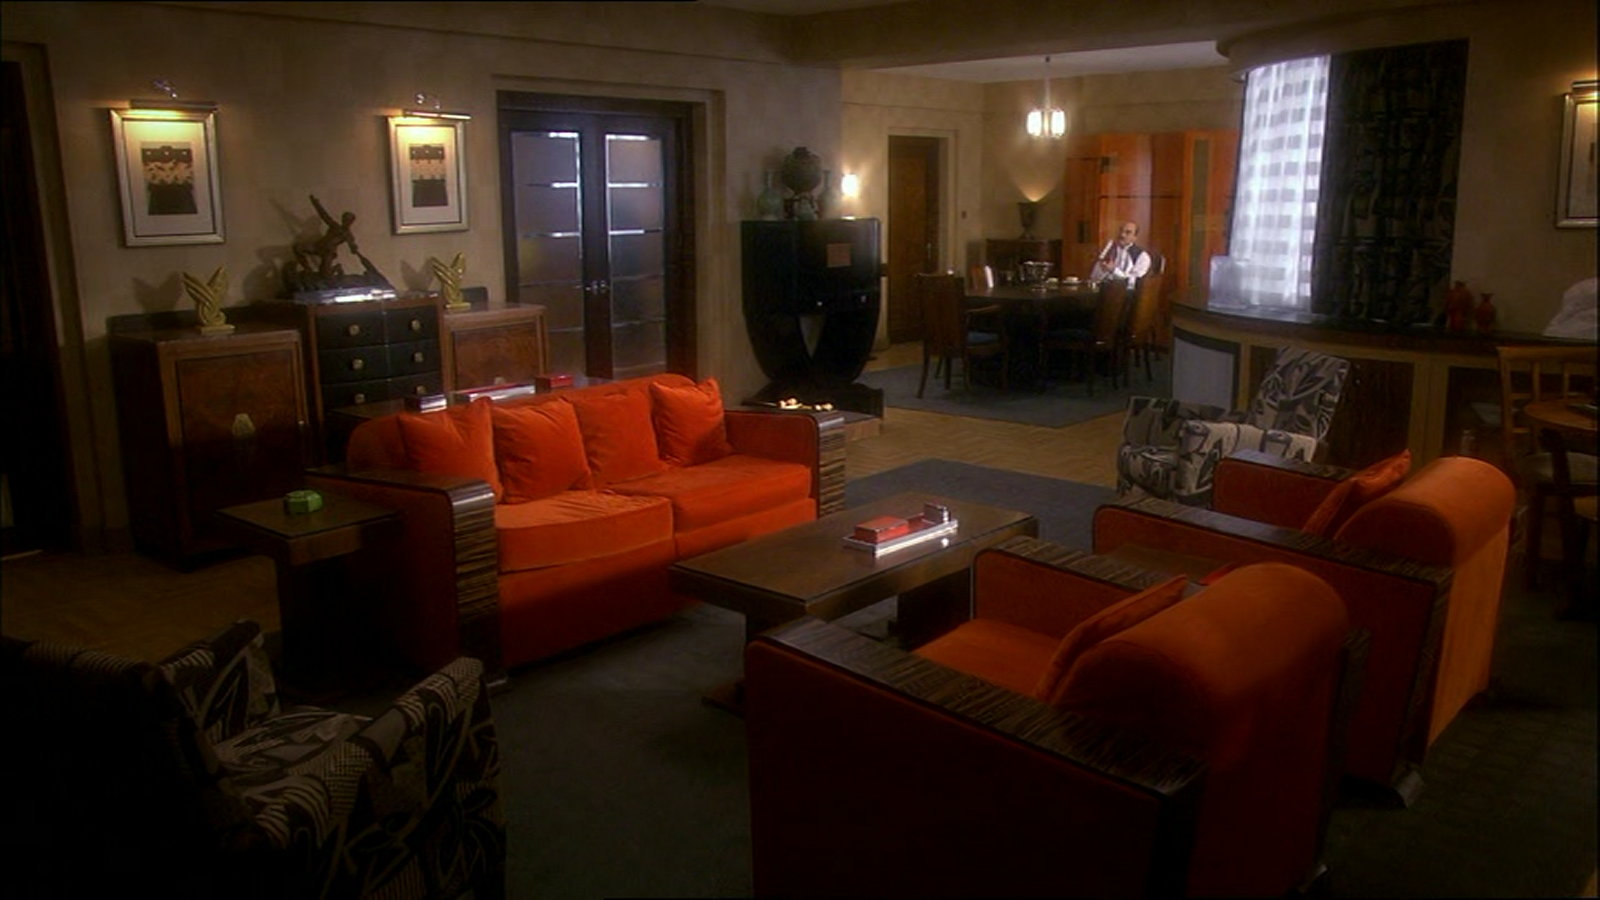 The chronology of agatha christie 39 s poirot apartment for Apartment furniture